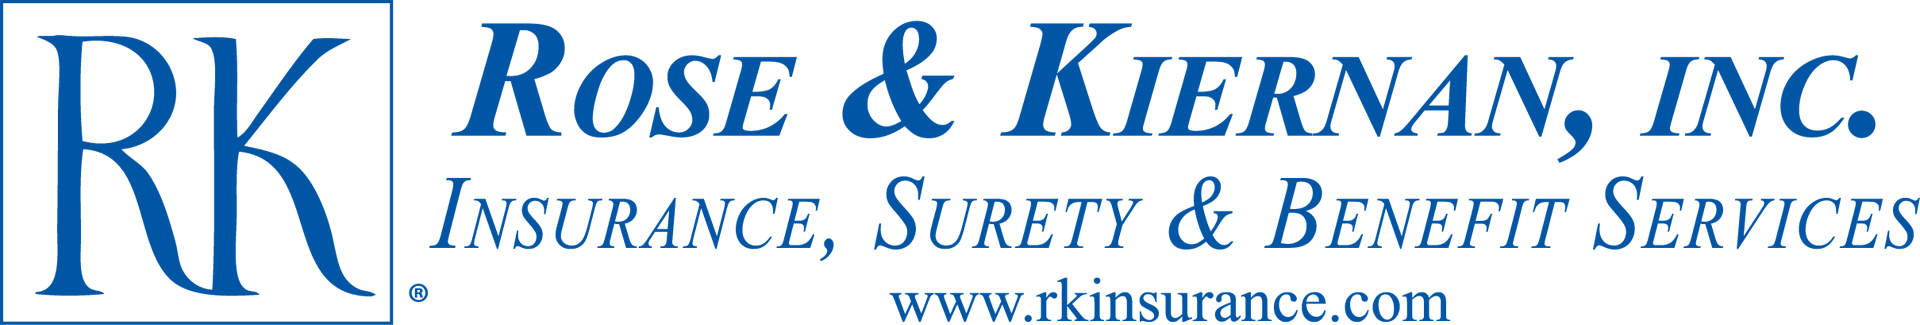 Rose & Kiernan VECTOR LOGO with type 2017.png